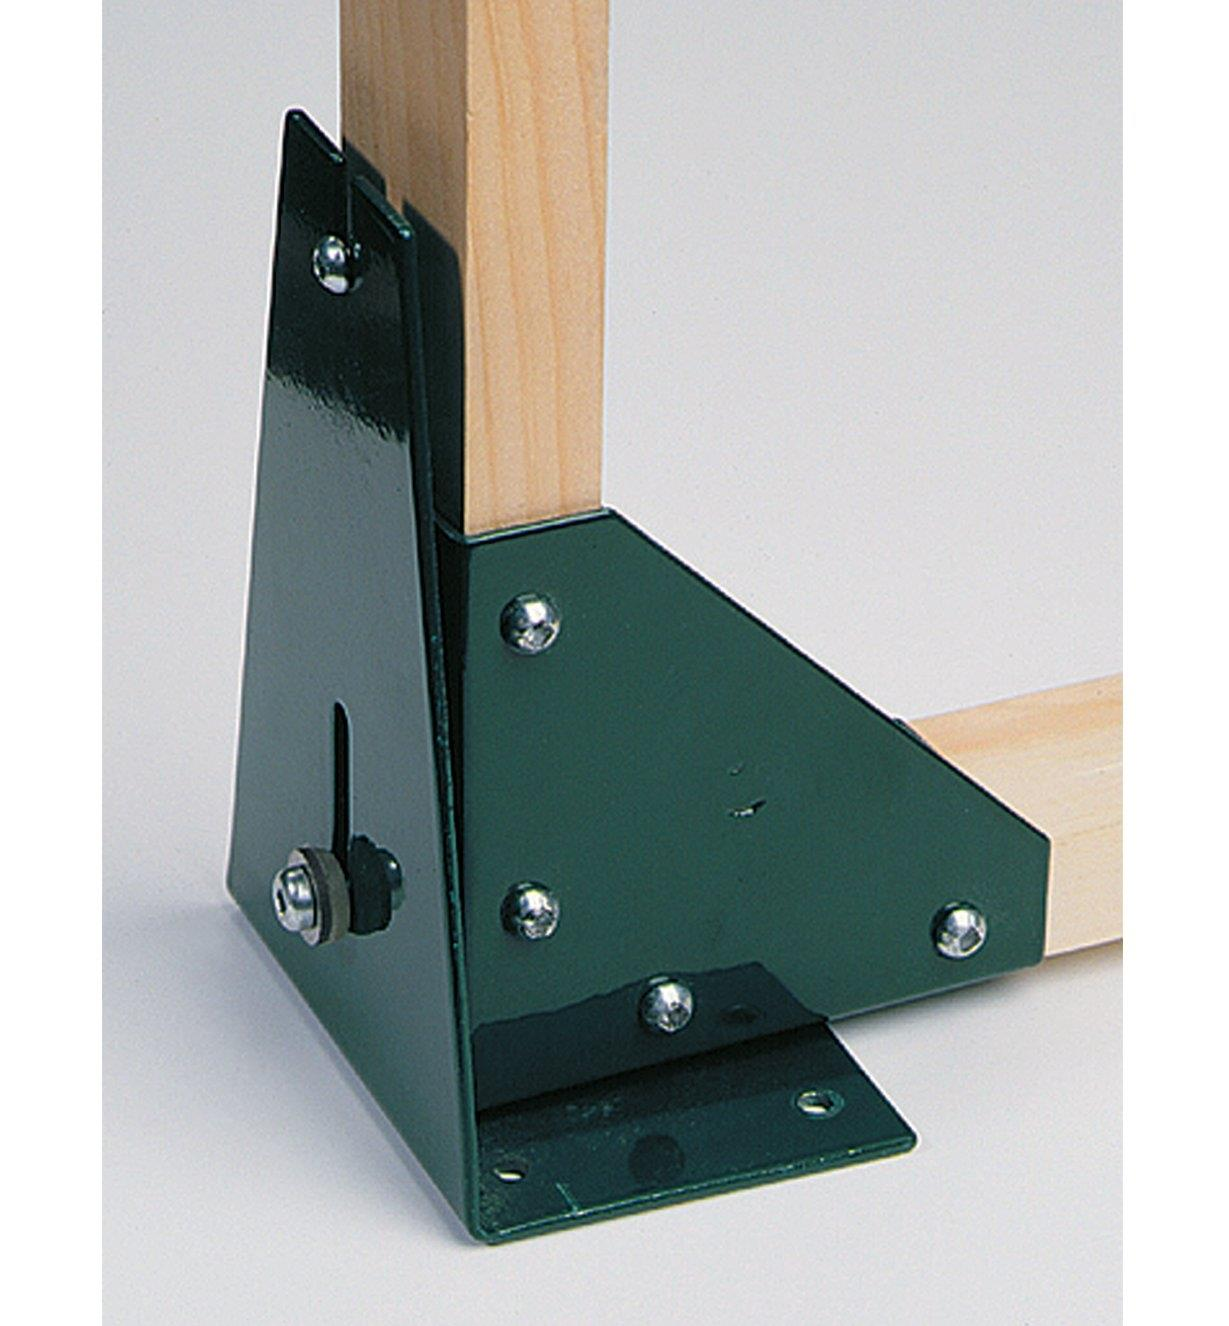 Top Kit corner bracket and hinge fastened to wood